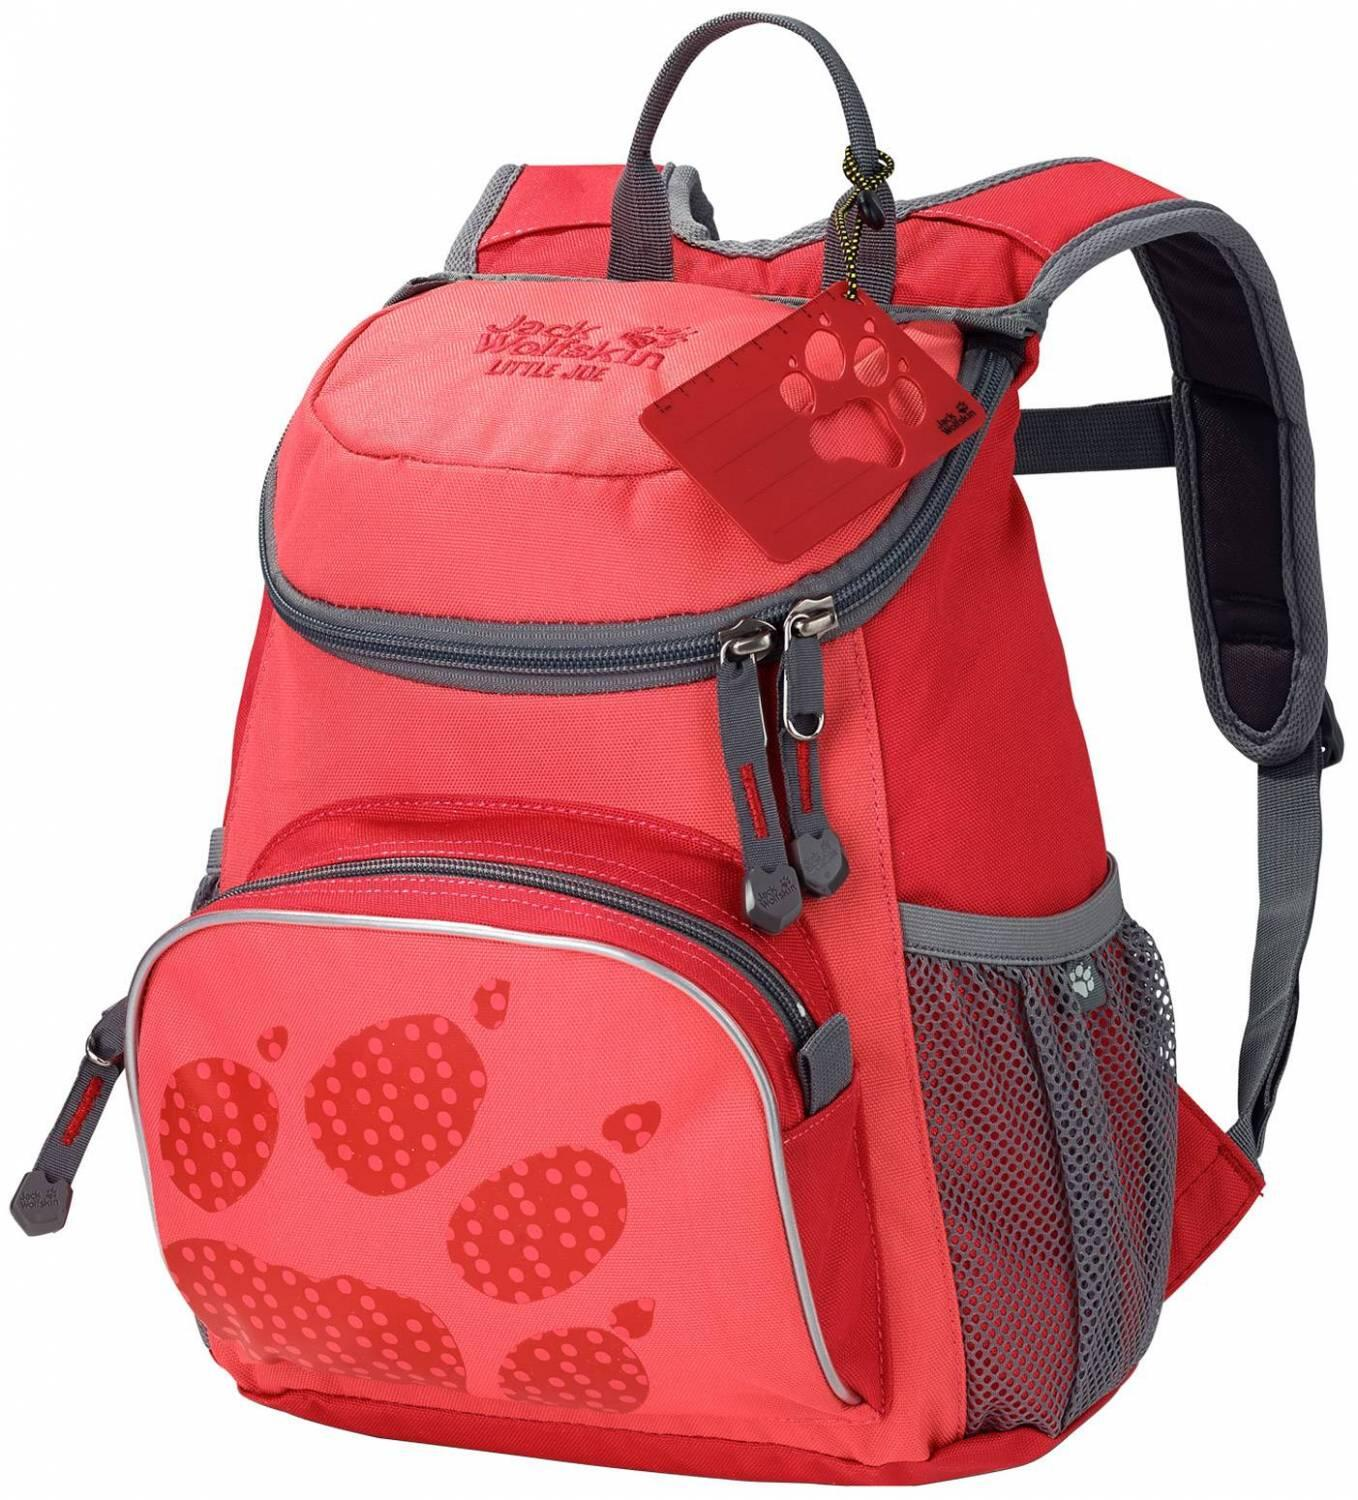 jack-wolfskin-little-joe-kinder-rucksack-farbe-2037-grapefruit-